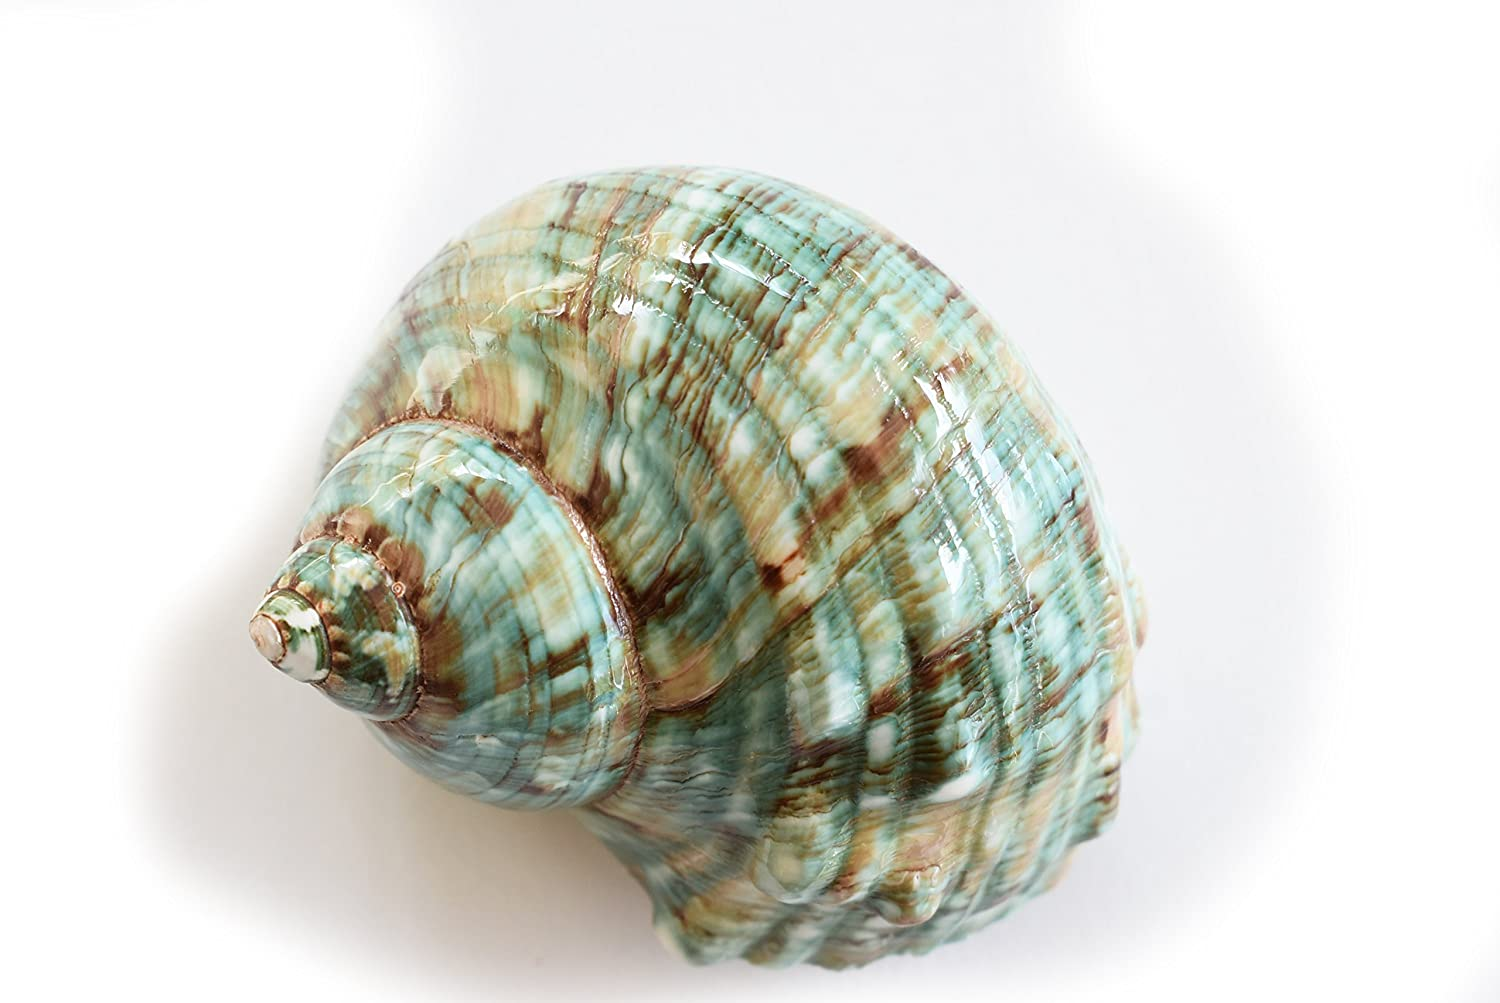 Large Polished Jade Turbo (3 - 3 1/2) 1 1/2 opening Beach Crafts Nautical Decor Large Hermit Crabs - Florida Shells and Gifts Florida Shells and Gifts Inc.